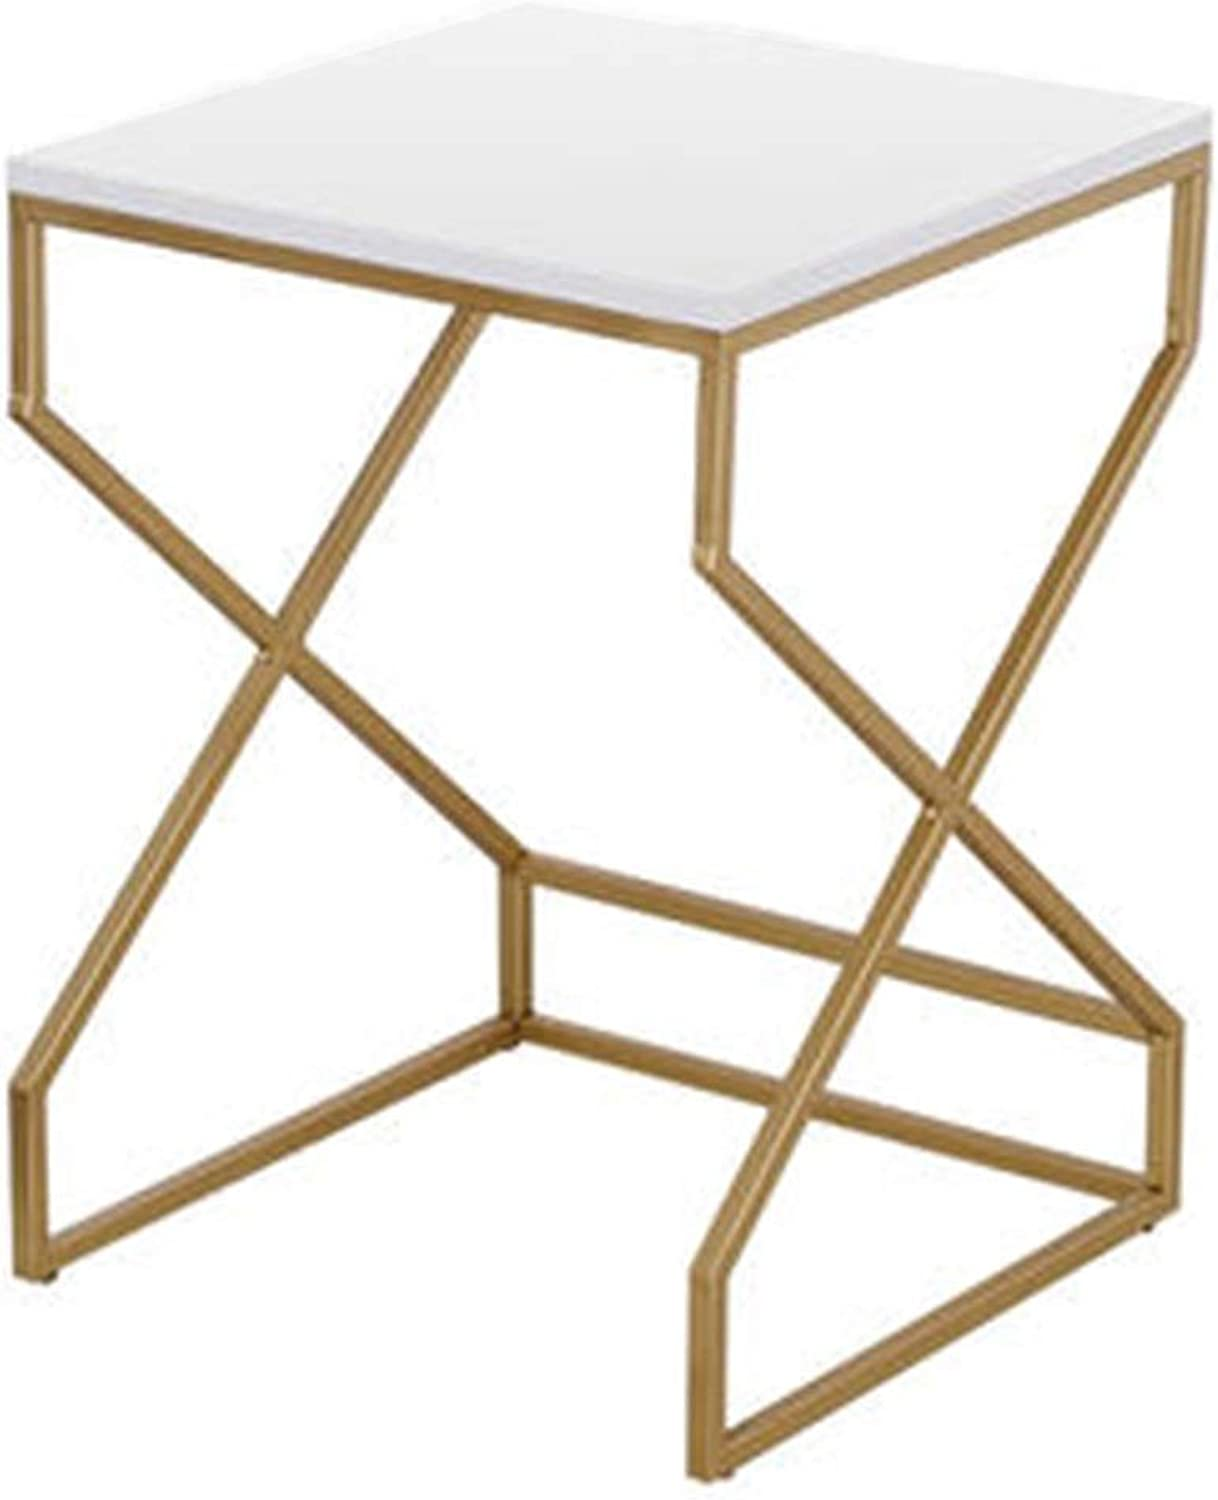 Coffee Table Wall-Mounted Folding Table Drop-Leaf Table, Household Simple Dining Table Against The Wall Learn Desk, 14 Sizes (Size   120  40cm)